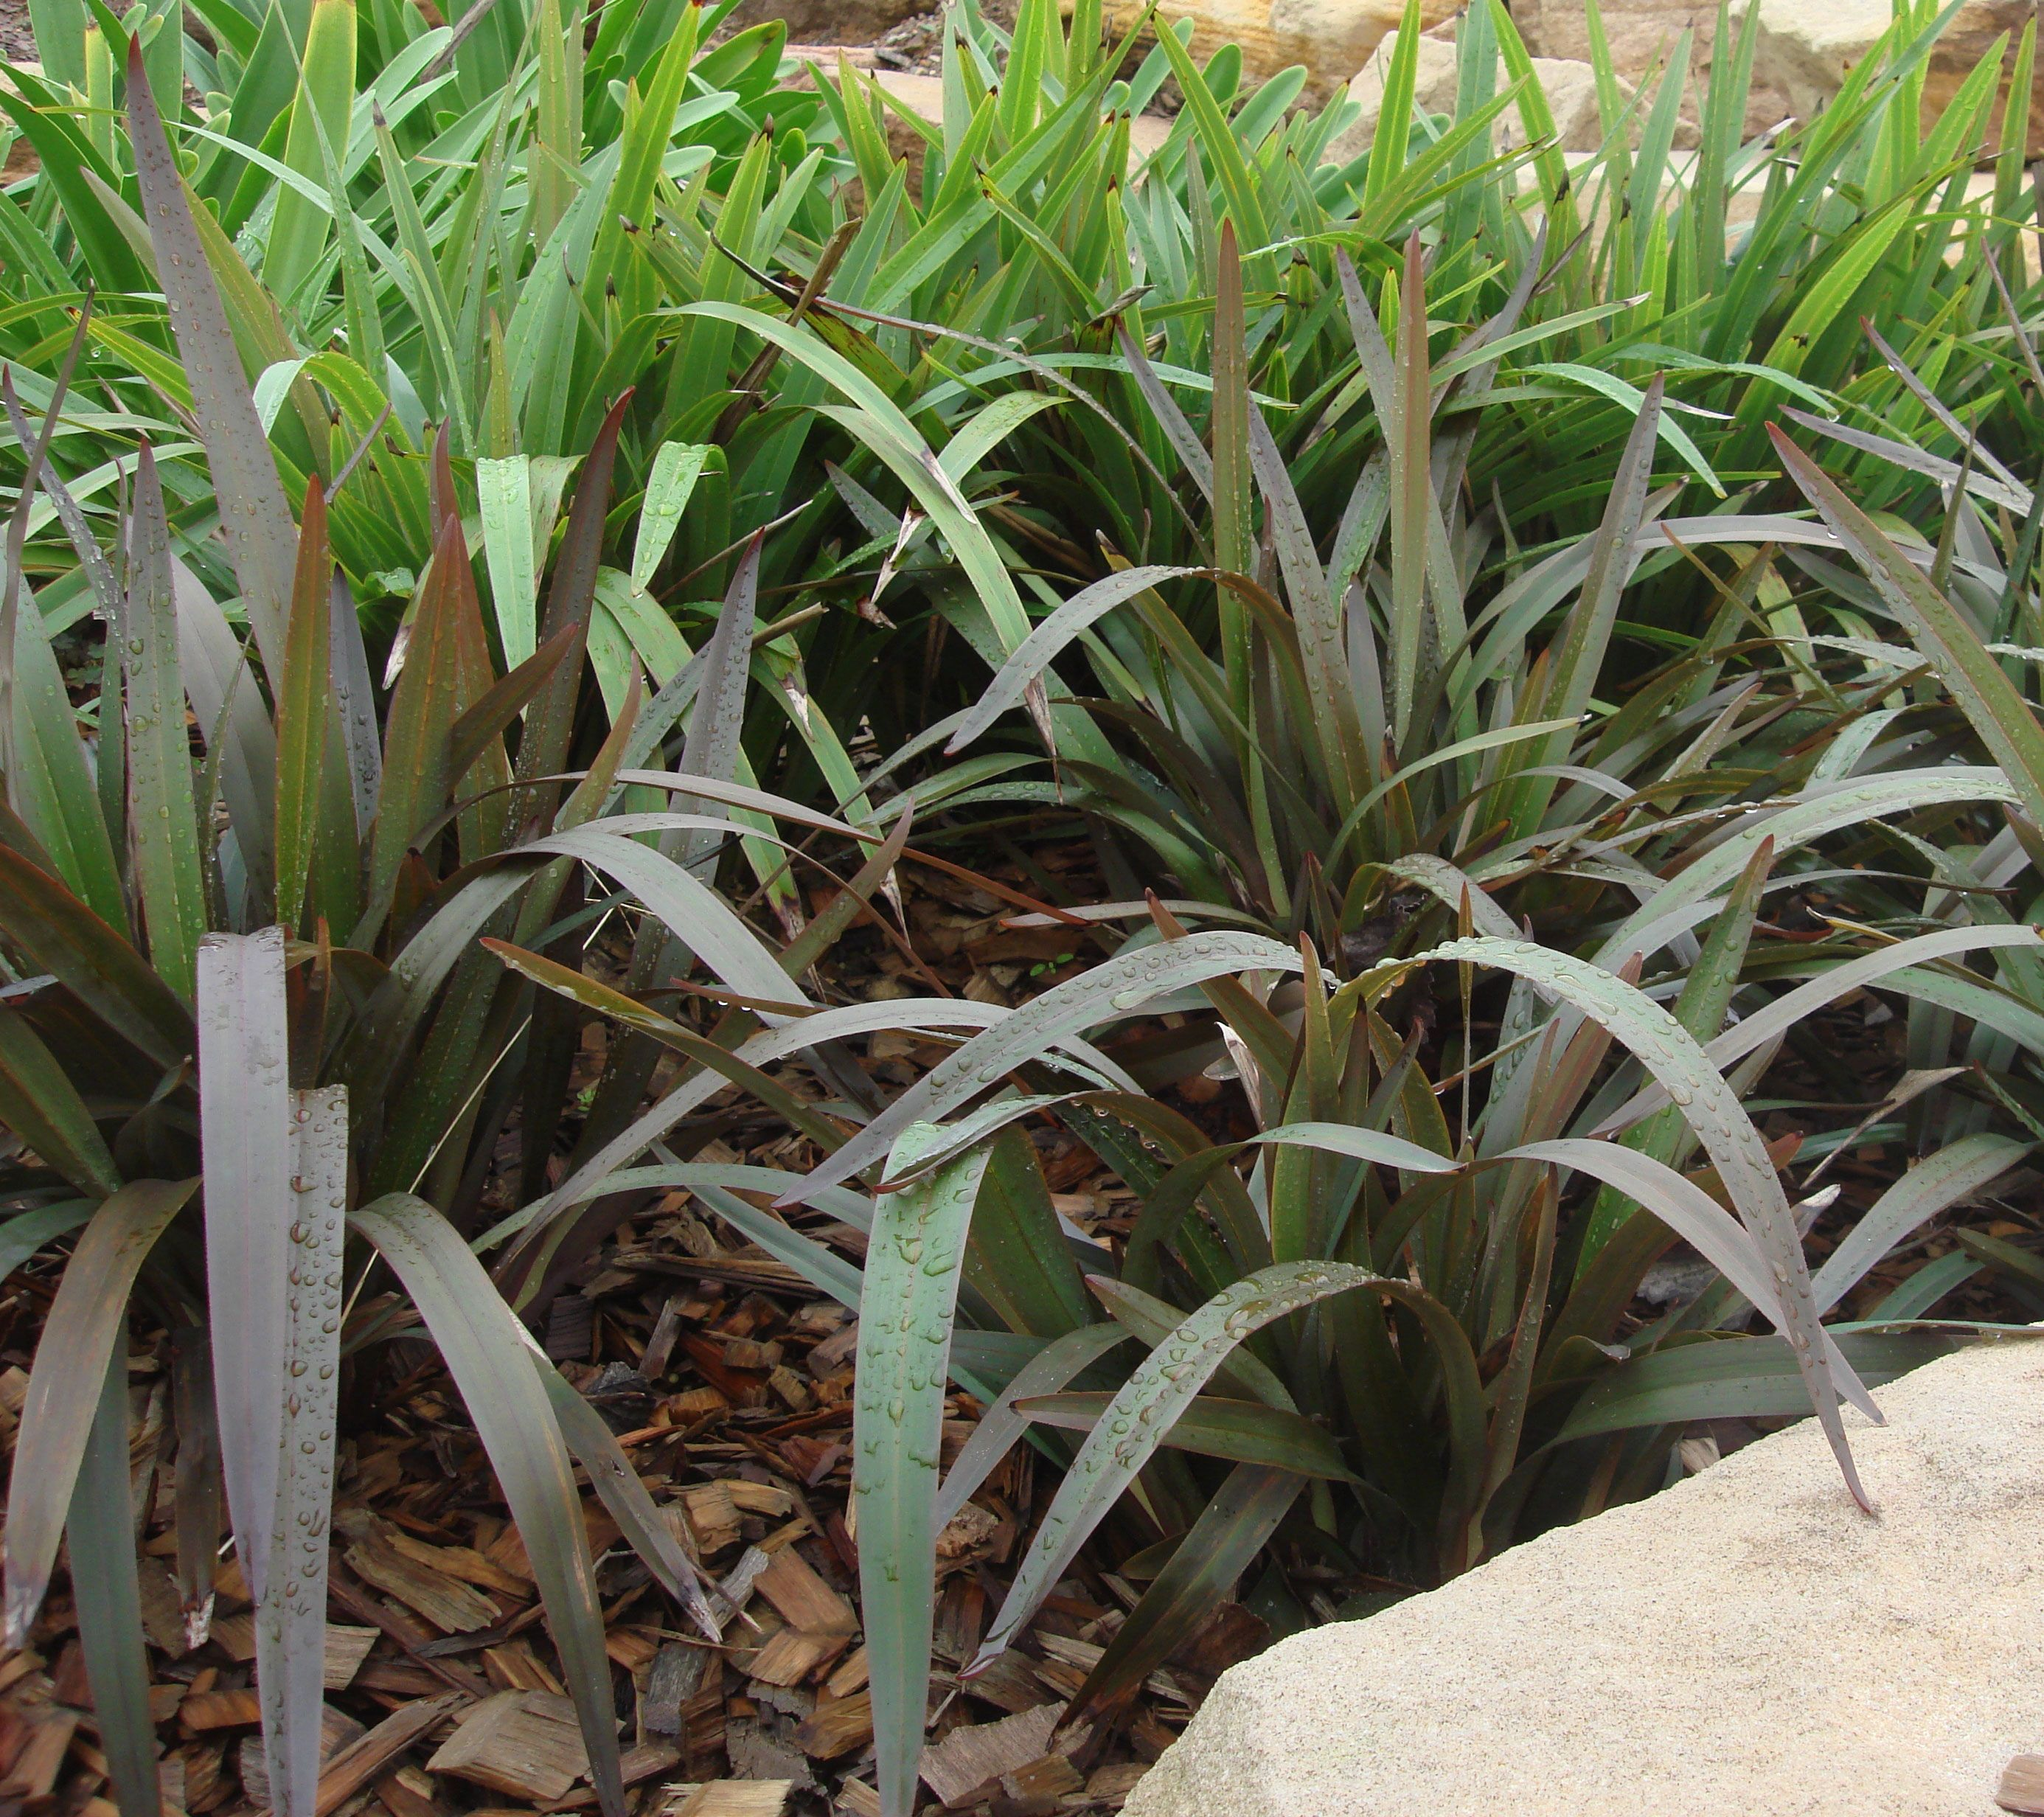 Blaze dianella is a heat tolerant strappy leaf plant with deep blaze dianella is a heat tolerant strappy leaf plant with deep purple foliage thecheapjerseys Image collections